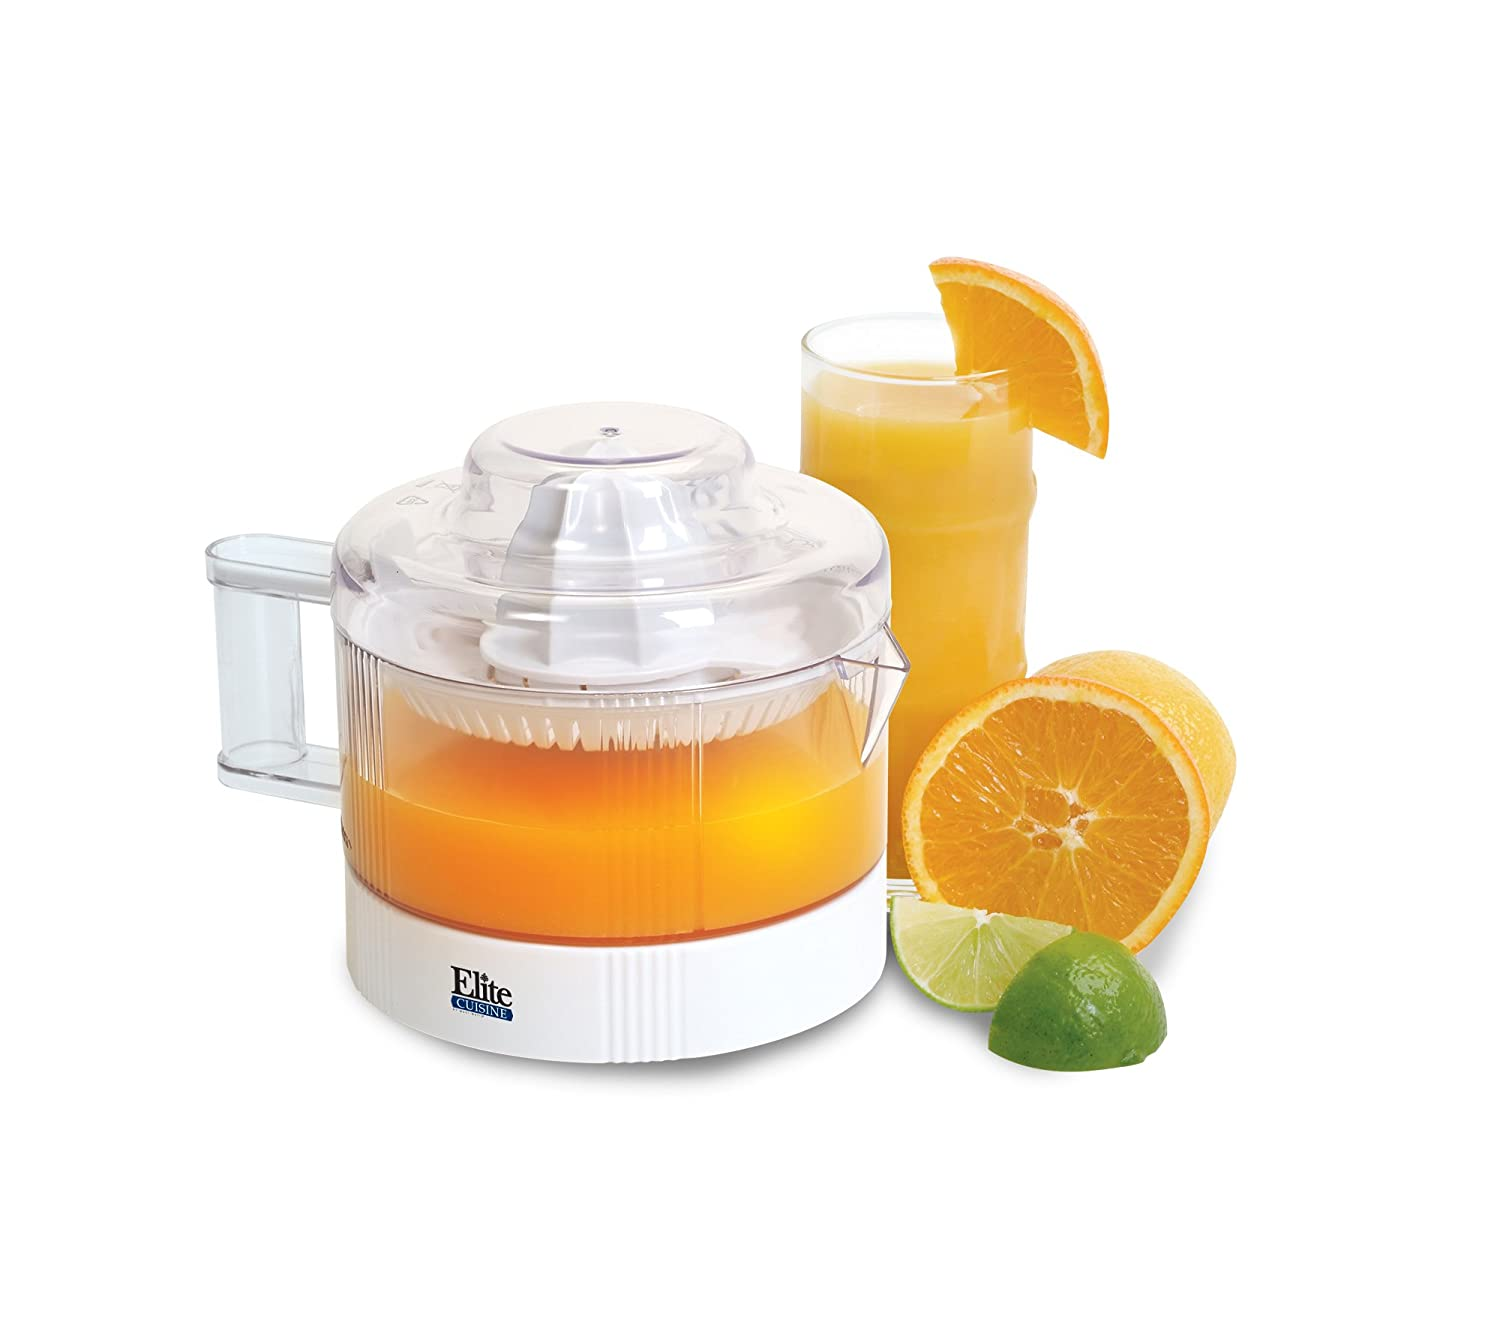 Elite Cuisine ETS-401 Maxi-Matic 20-Ounce Citrus Juicer, White